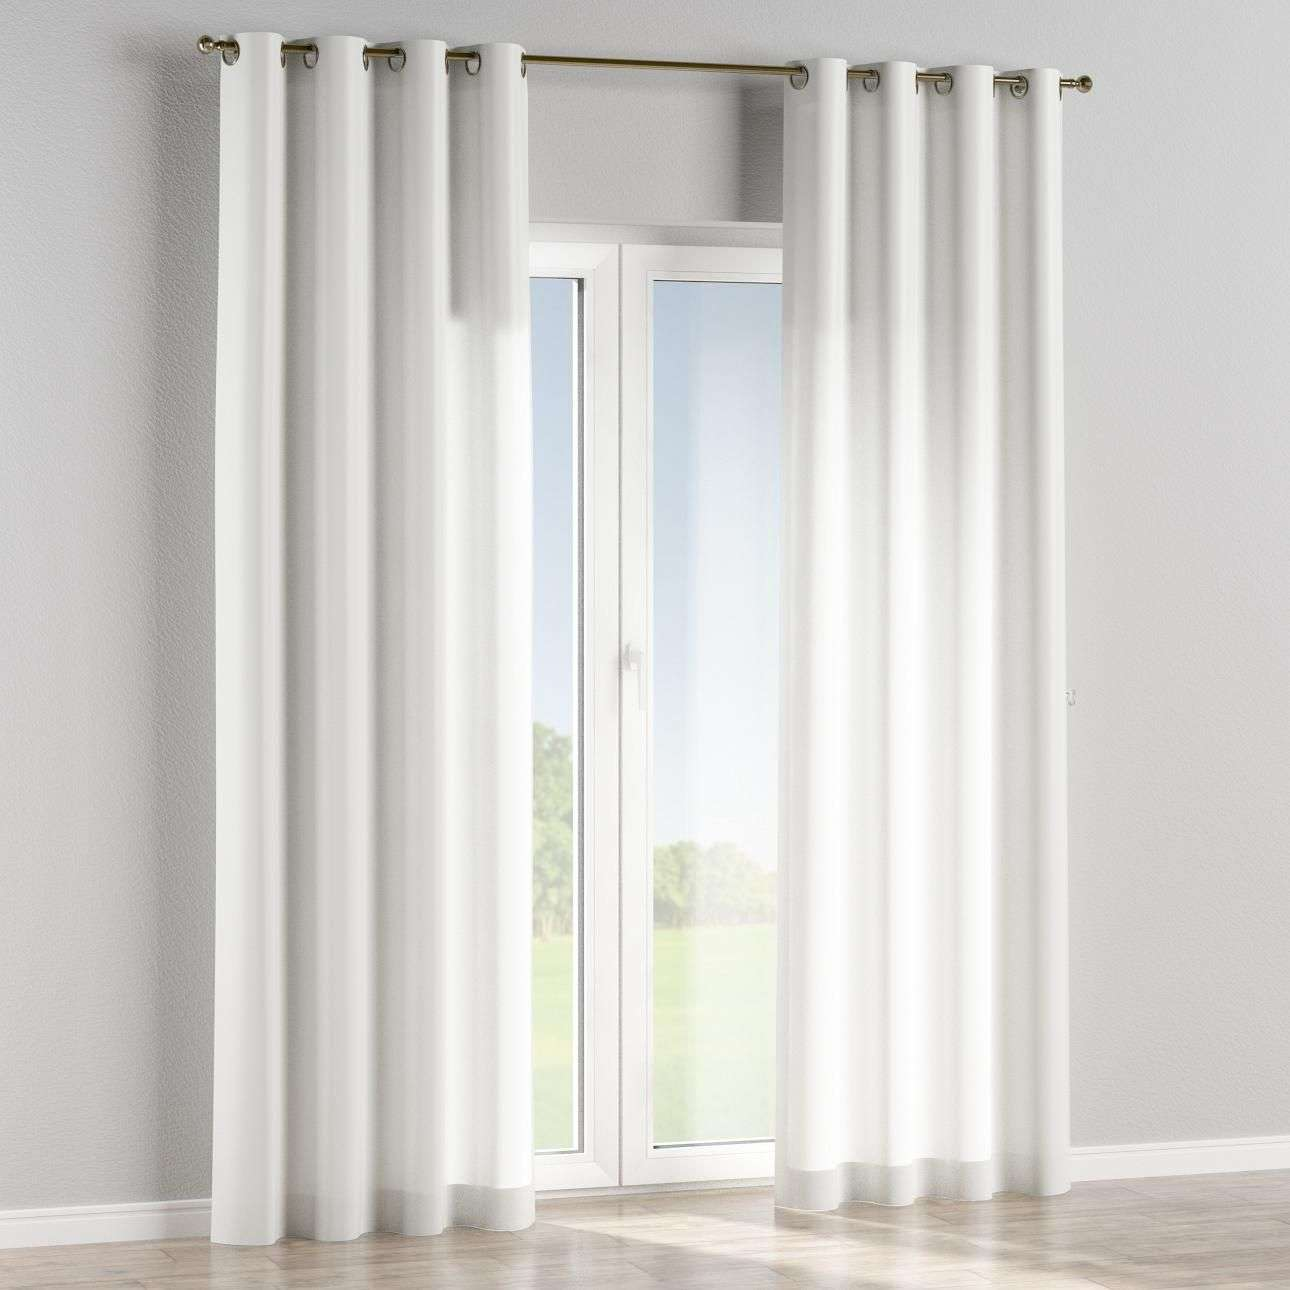 Eyelet curtains in collection Taffeta , fabric: 103-70